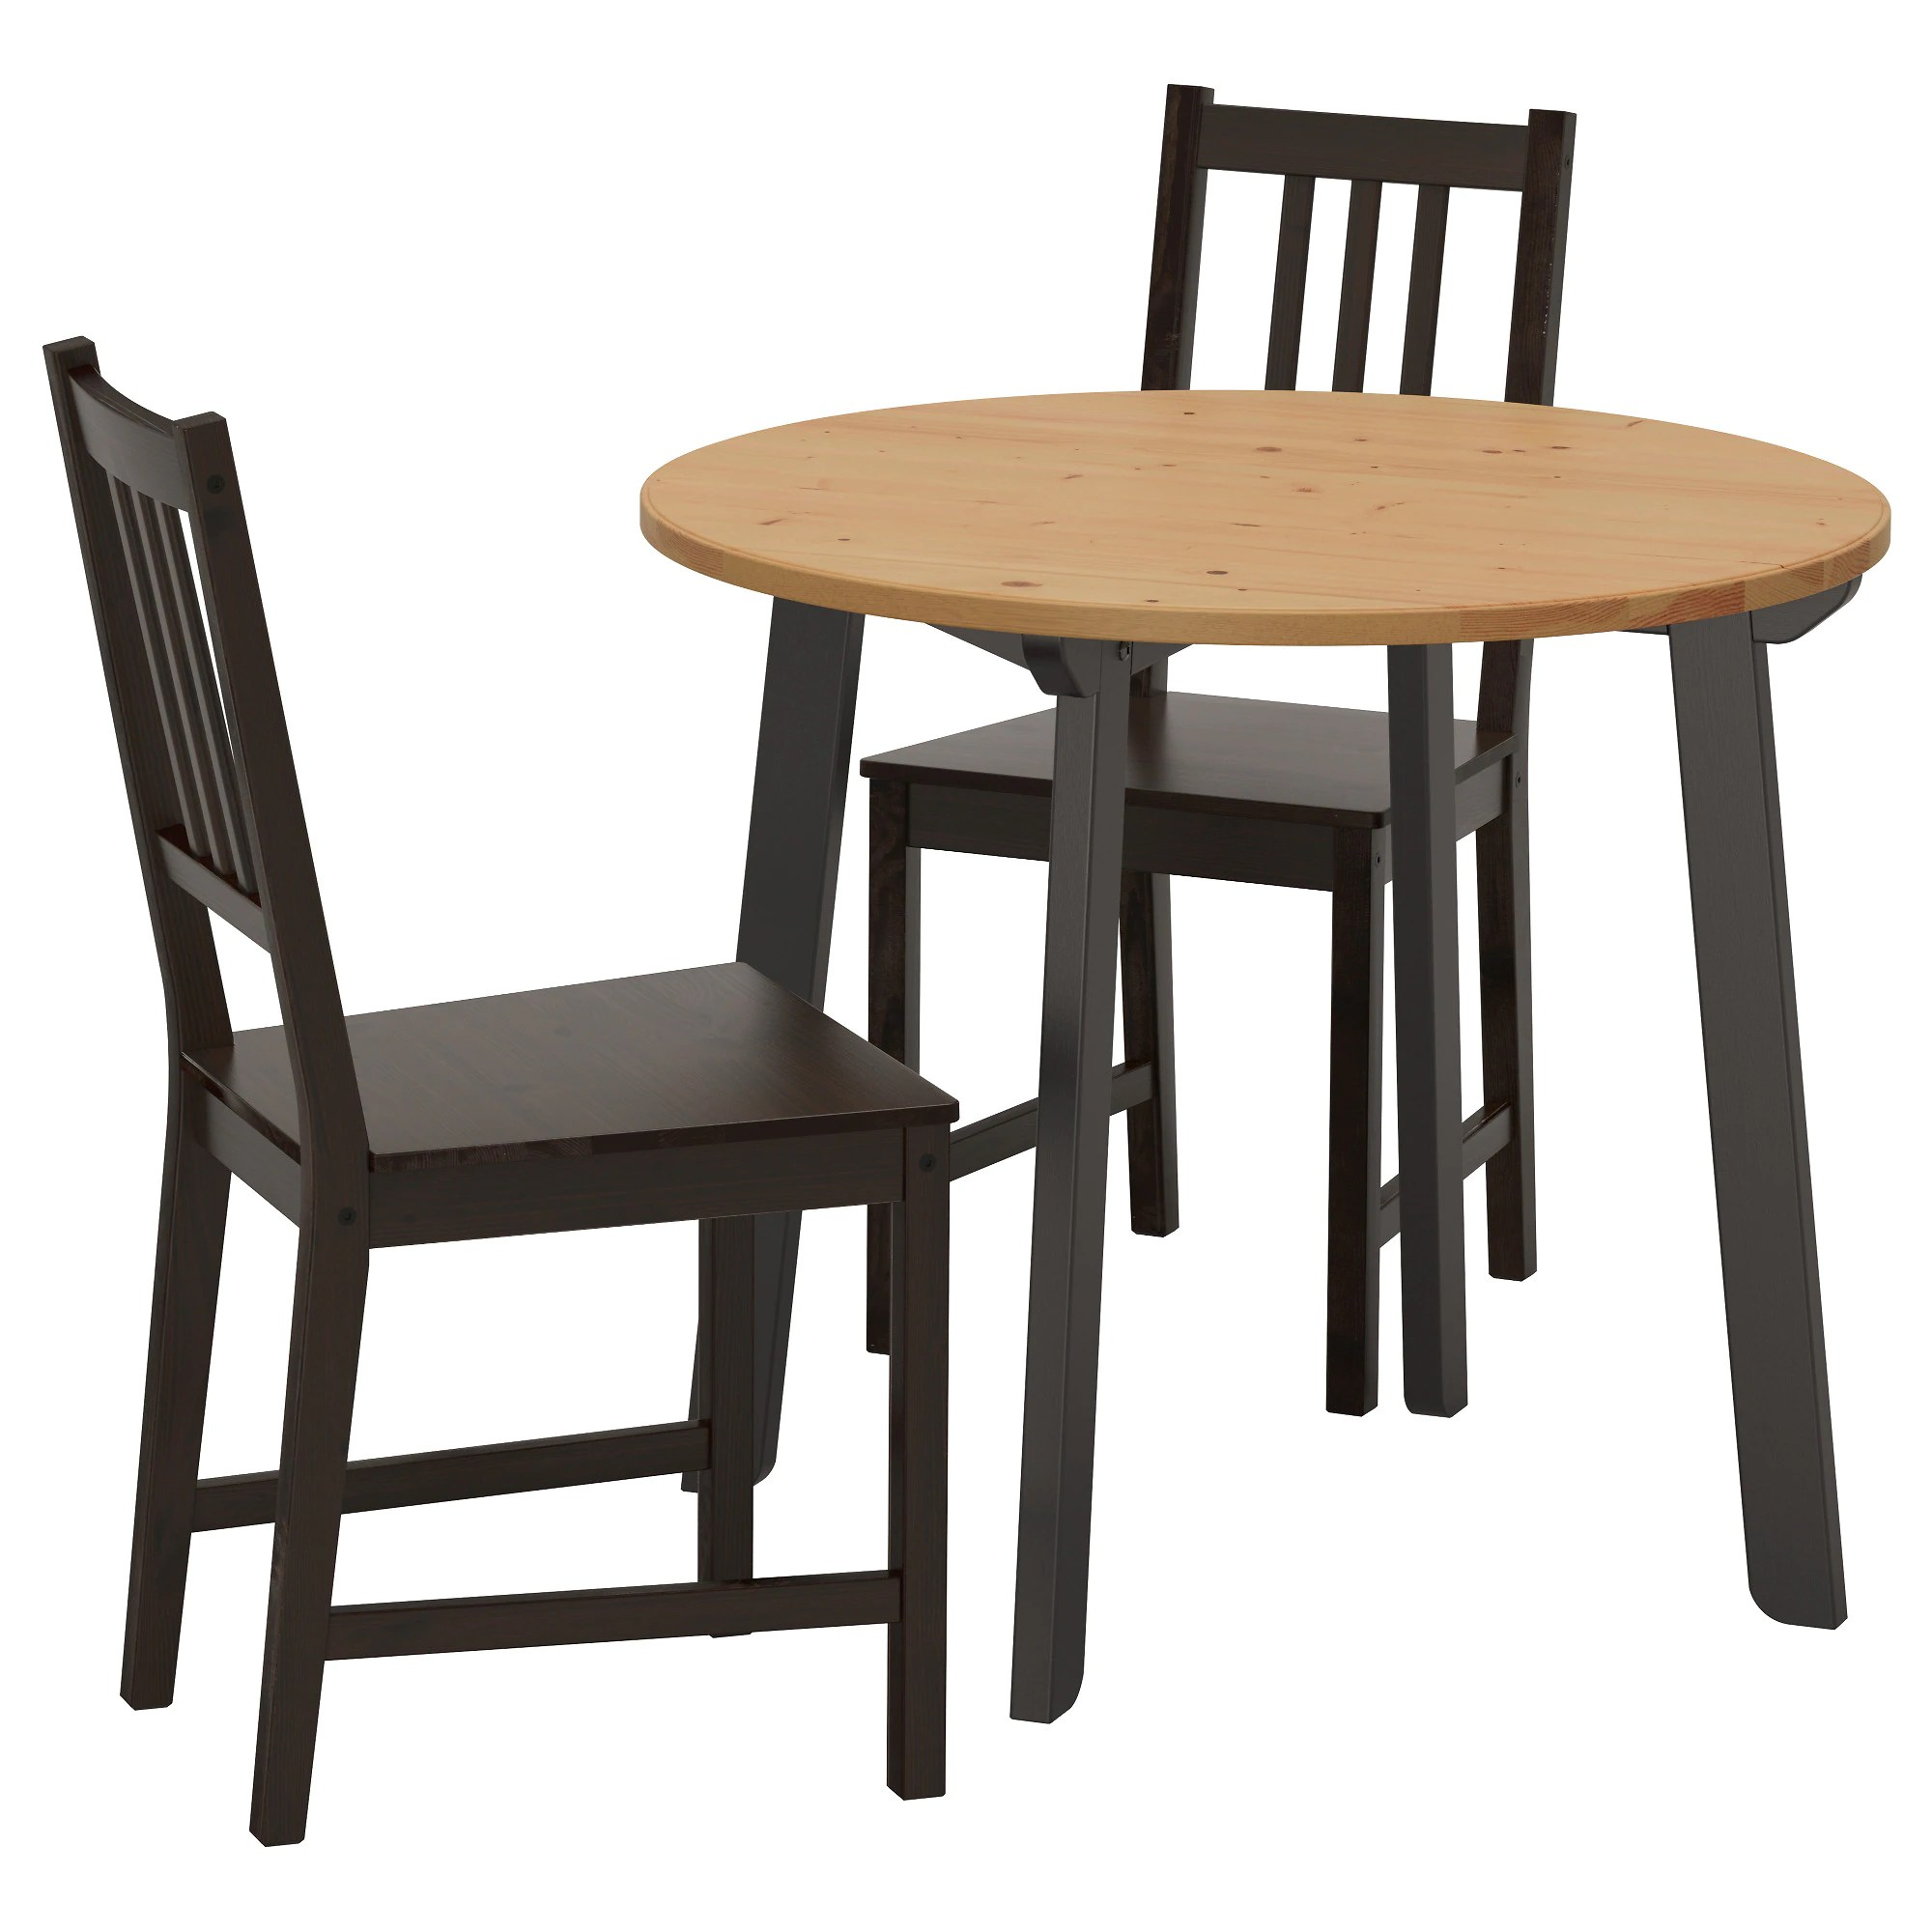 Table With Two Chairs Table And 2 Chairs Gamlared Stefan Light Antique Stain Brown Black